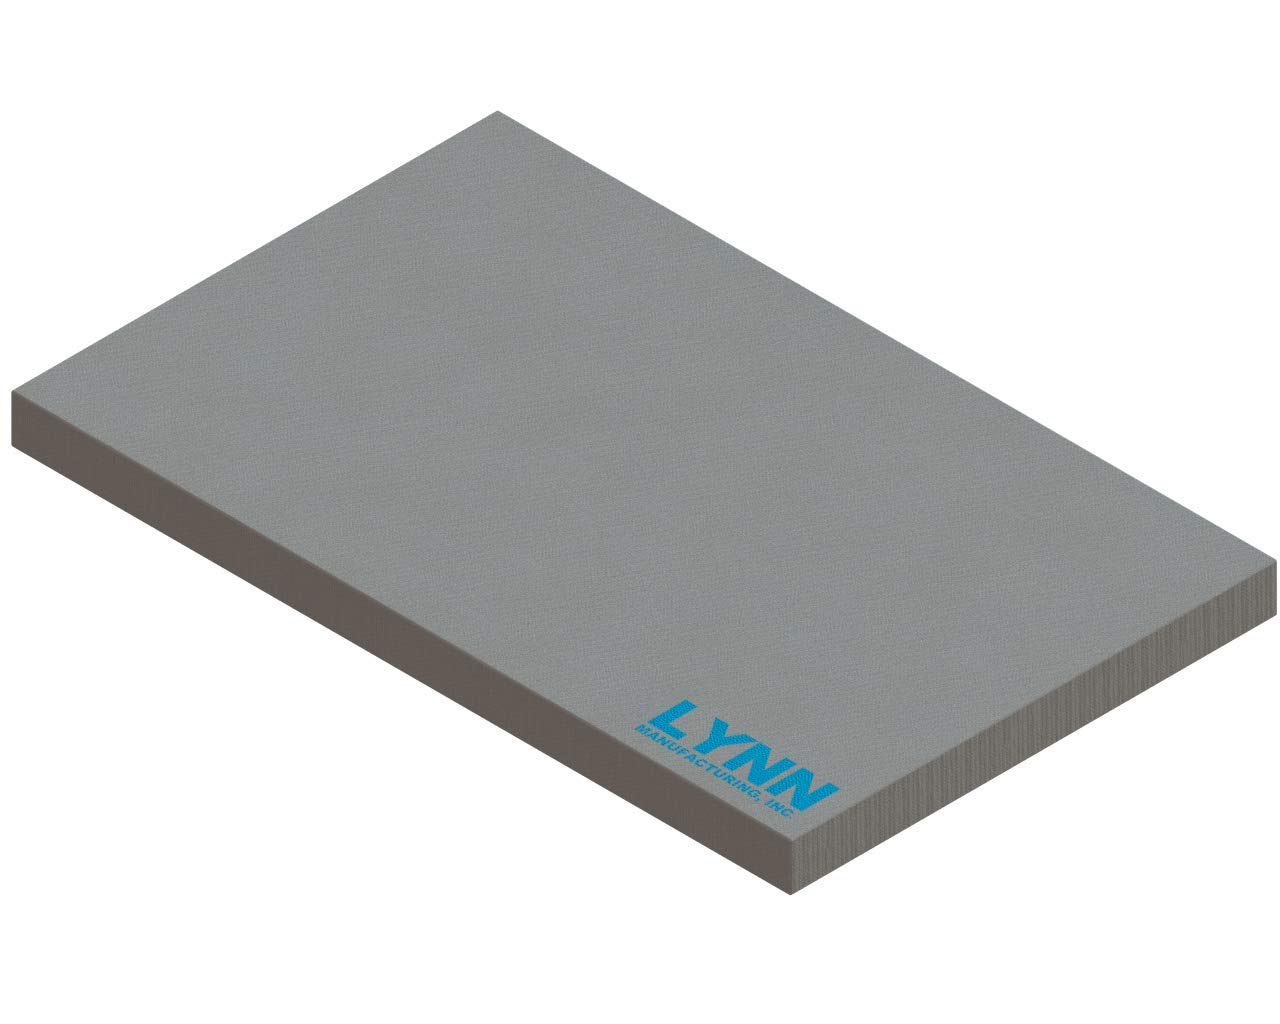 Lynn Manufacturing Replacement SBI Baffle Board for Century, Drolet, Enerzone, Flame Energy, Osburn 21389 by Lynn Manufacturing